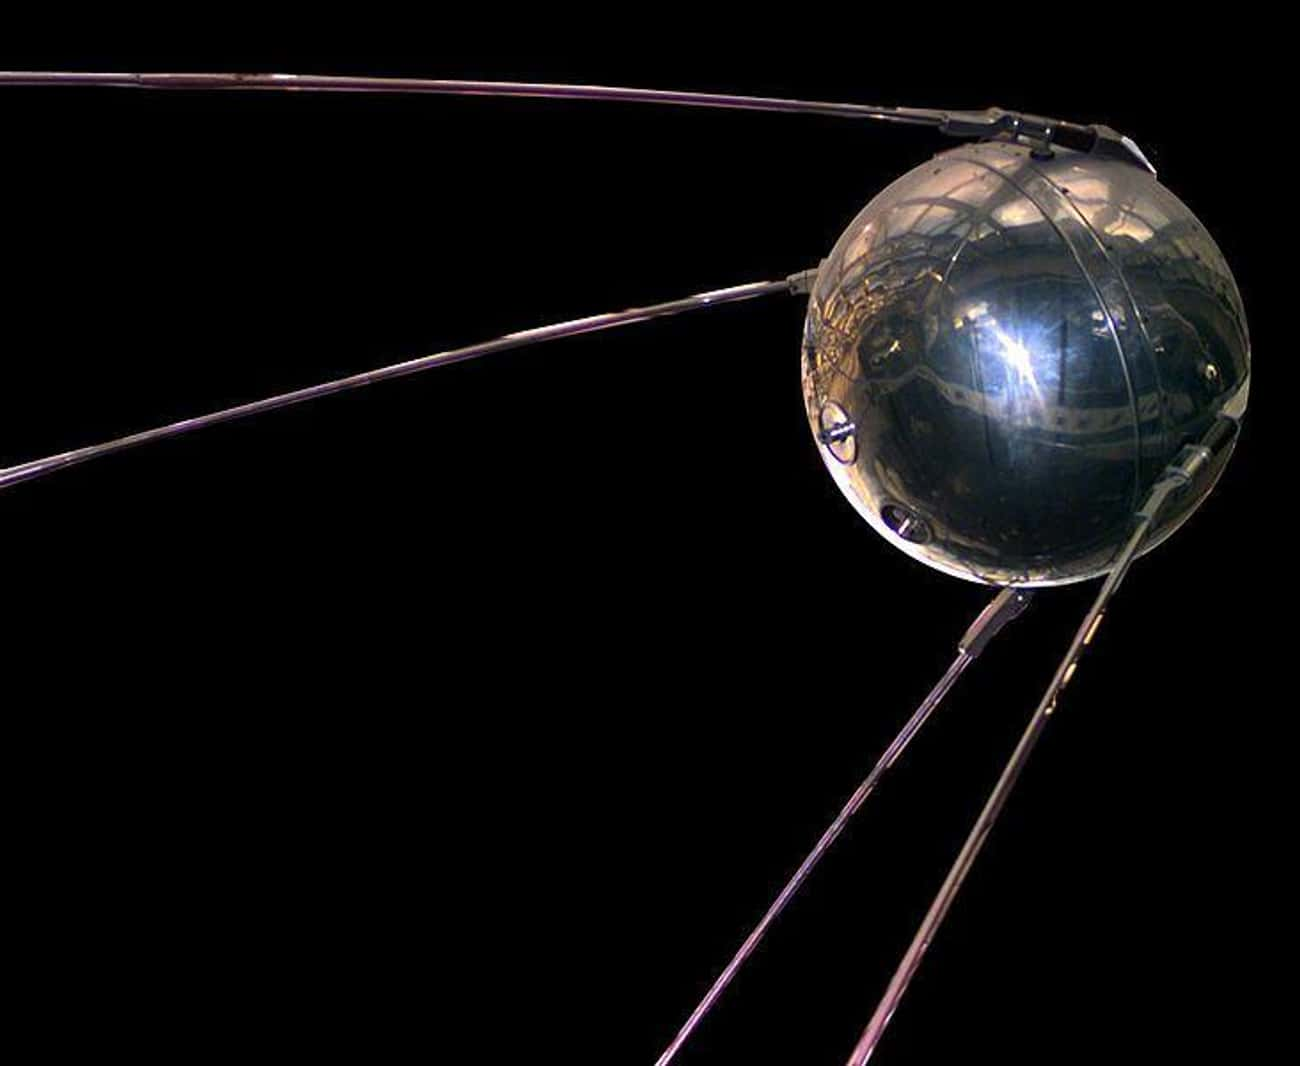 Sputnik Bankrupted the Soviet Union